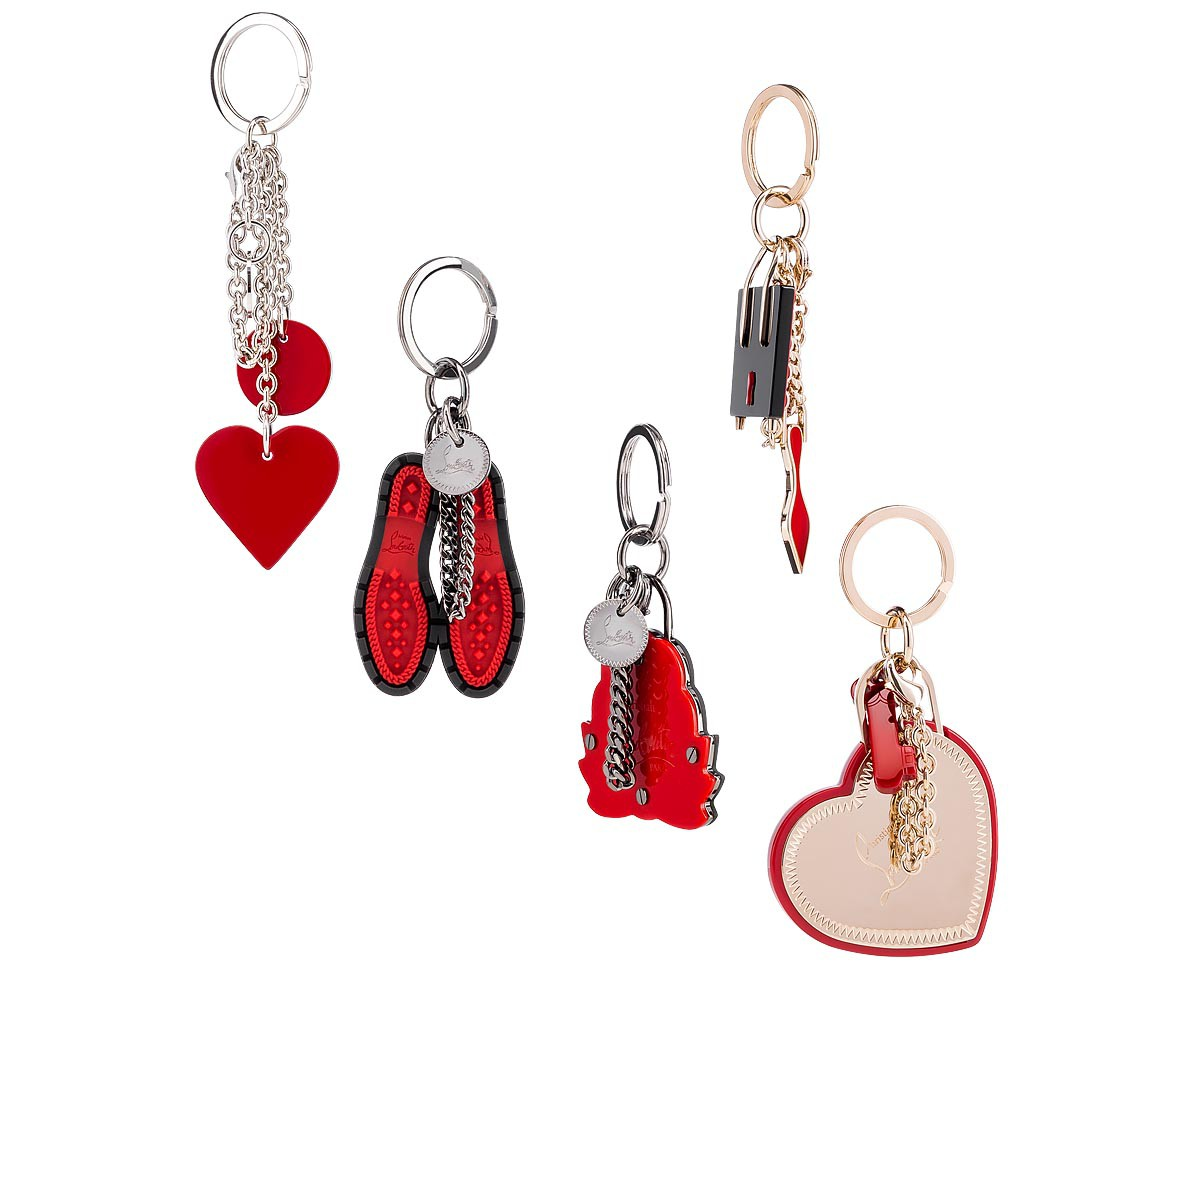 Small Leather Goods - Lug Sole Keyring - Christian Louboutin